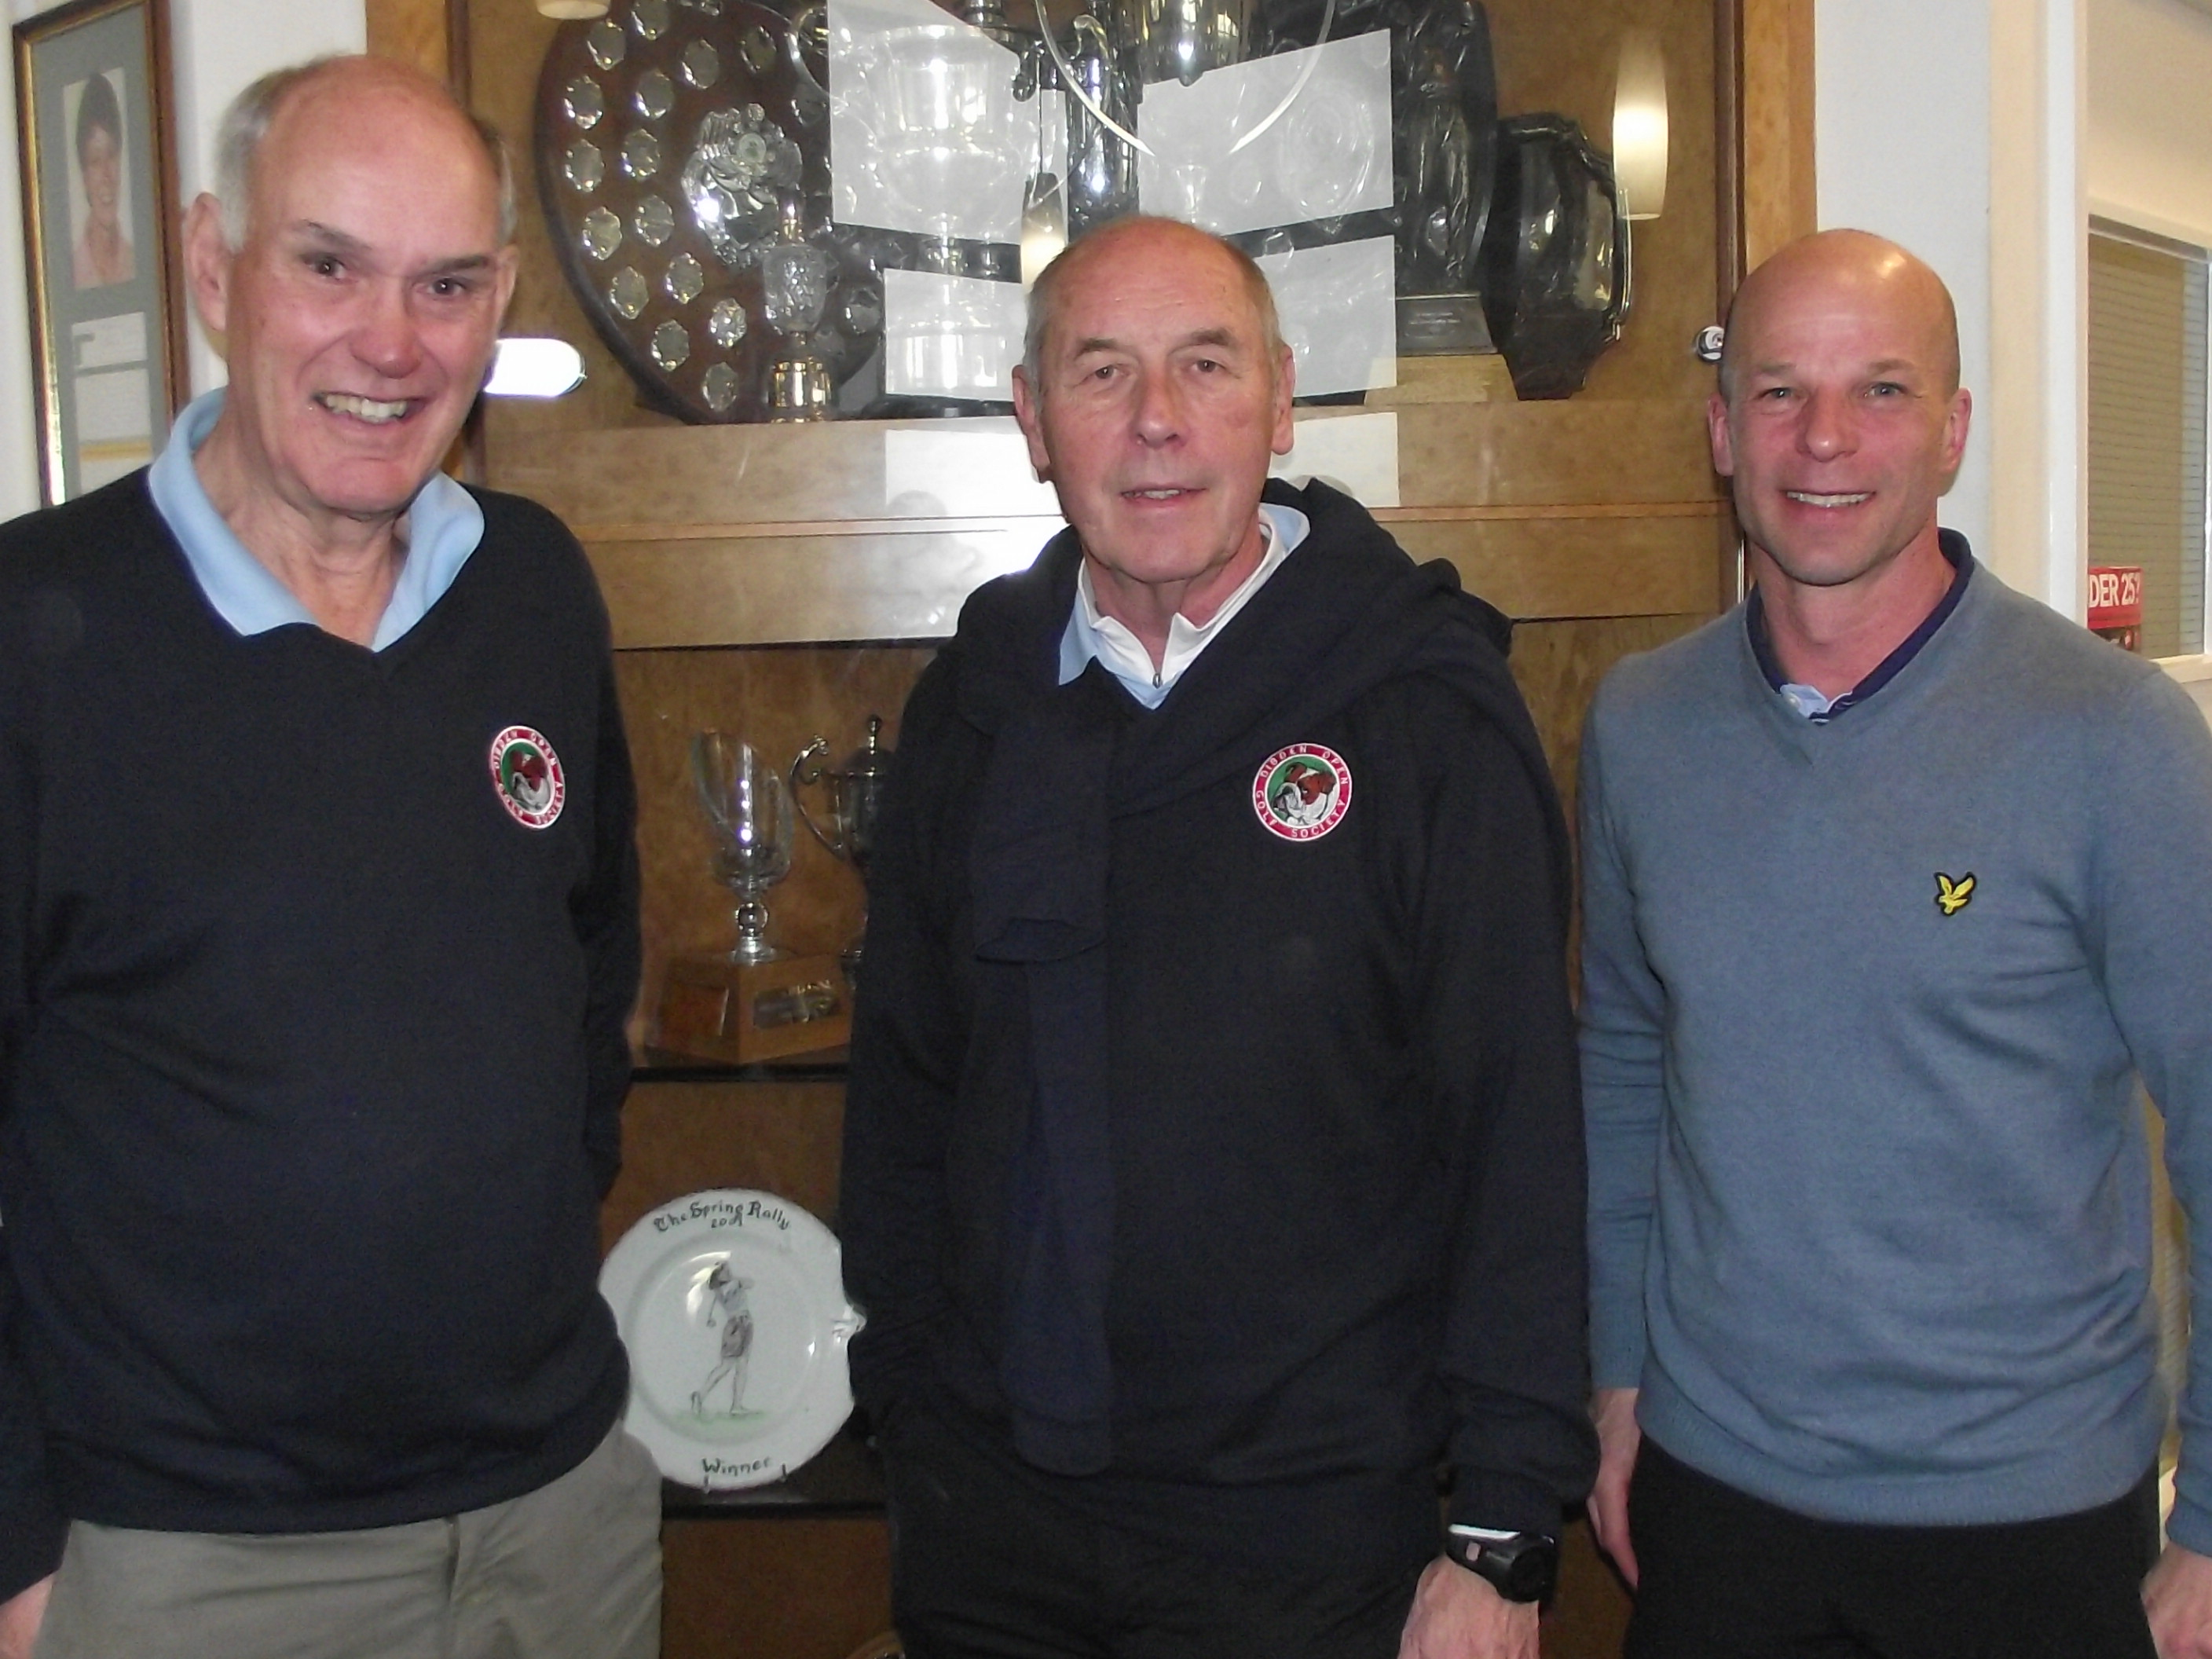 19 March: 2nd L to R Bob Coombs; Ken Barge; Paul Pallaster